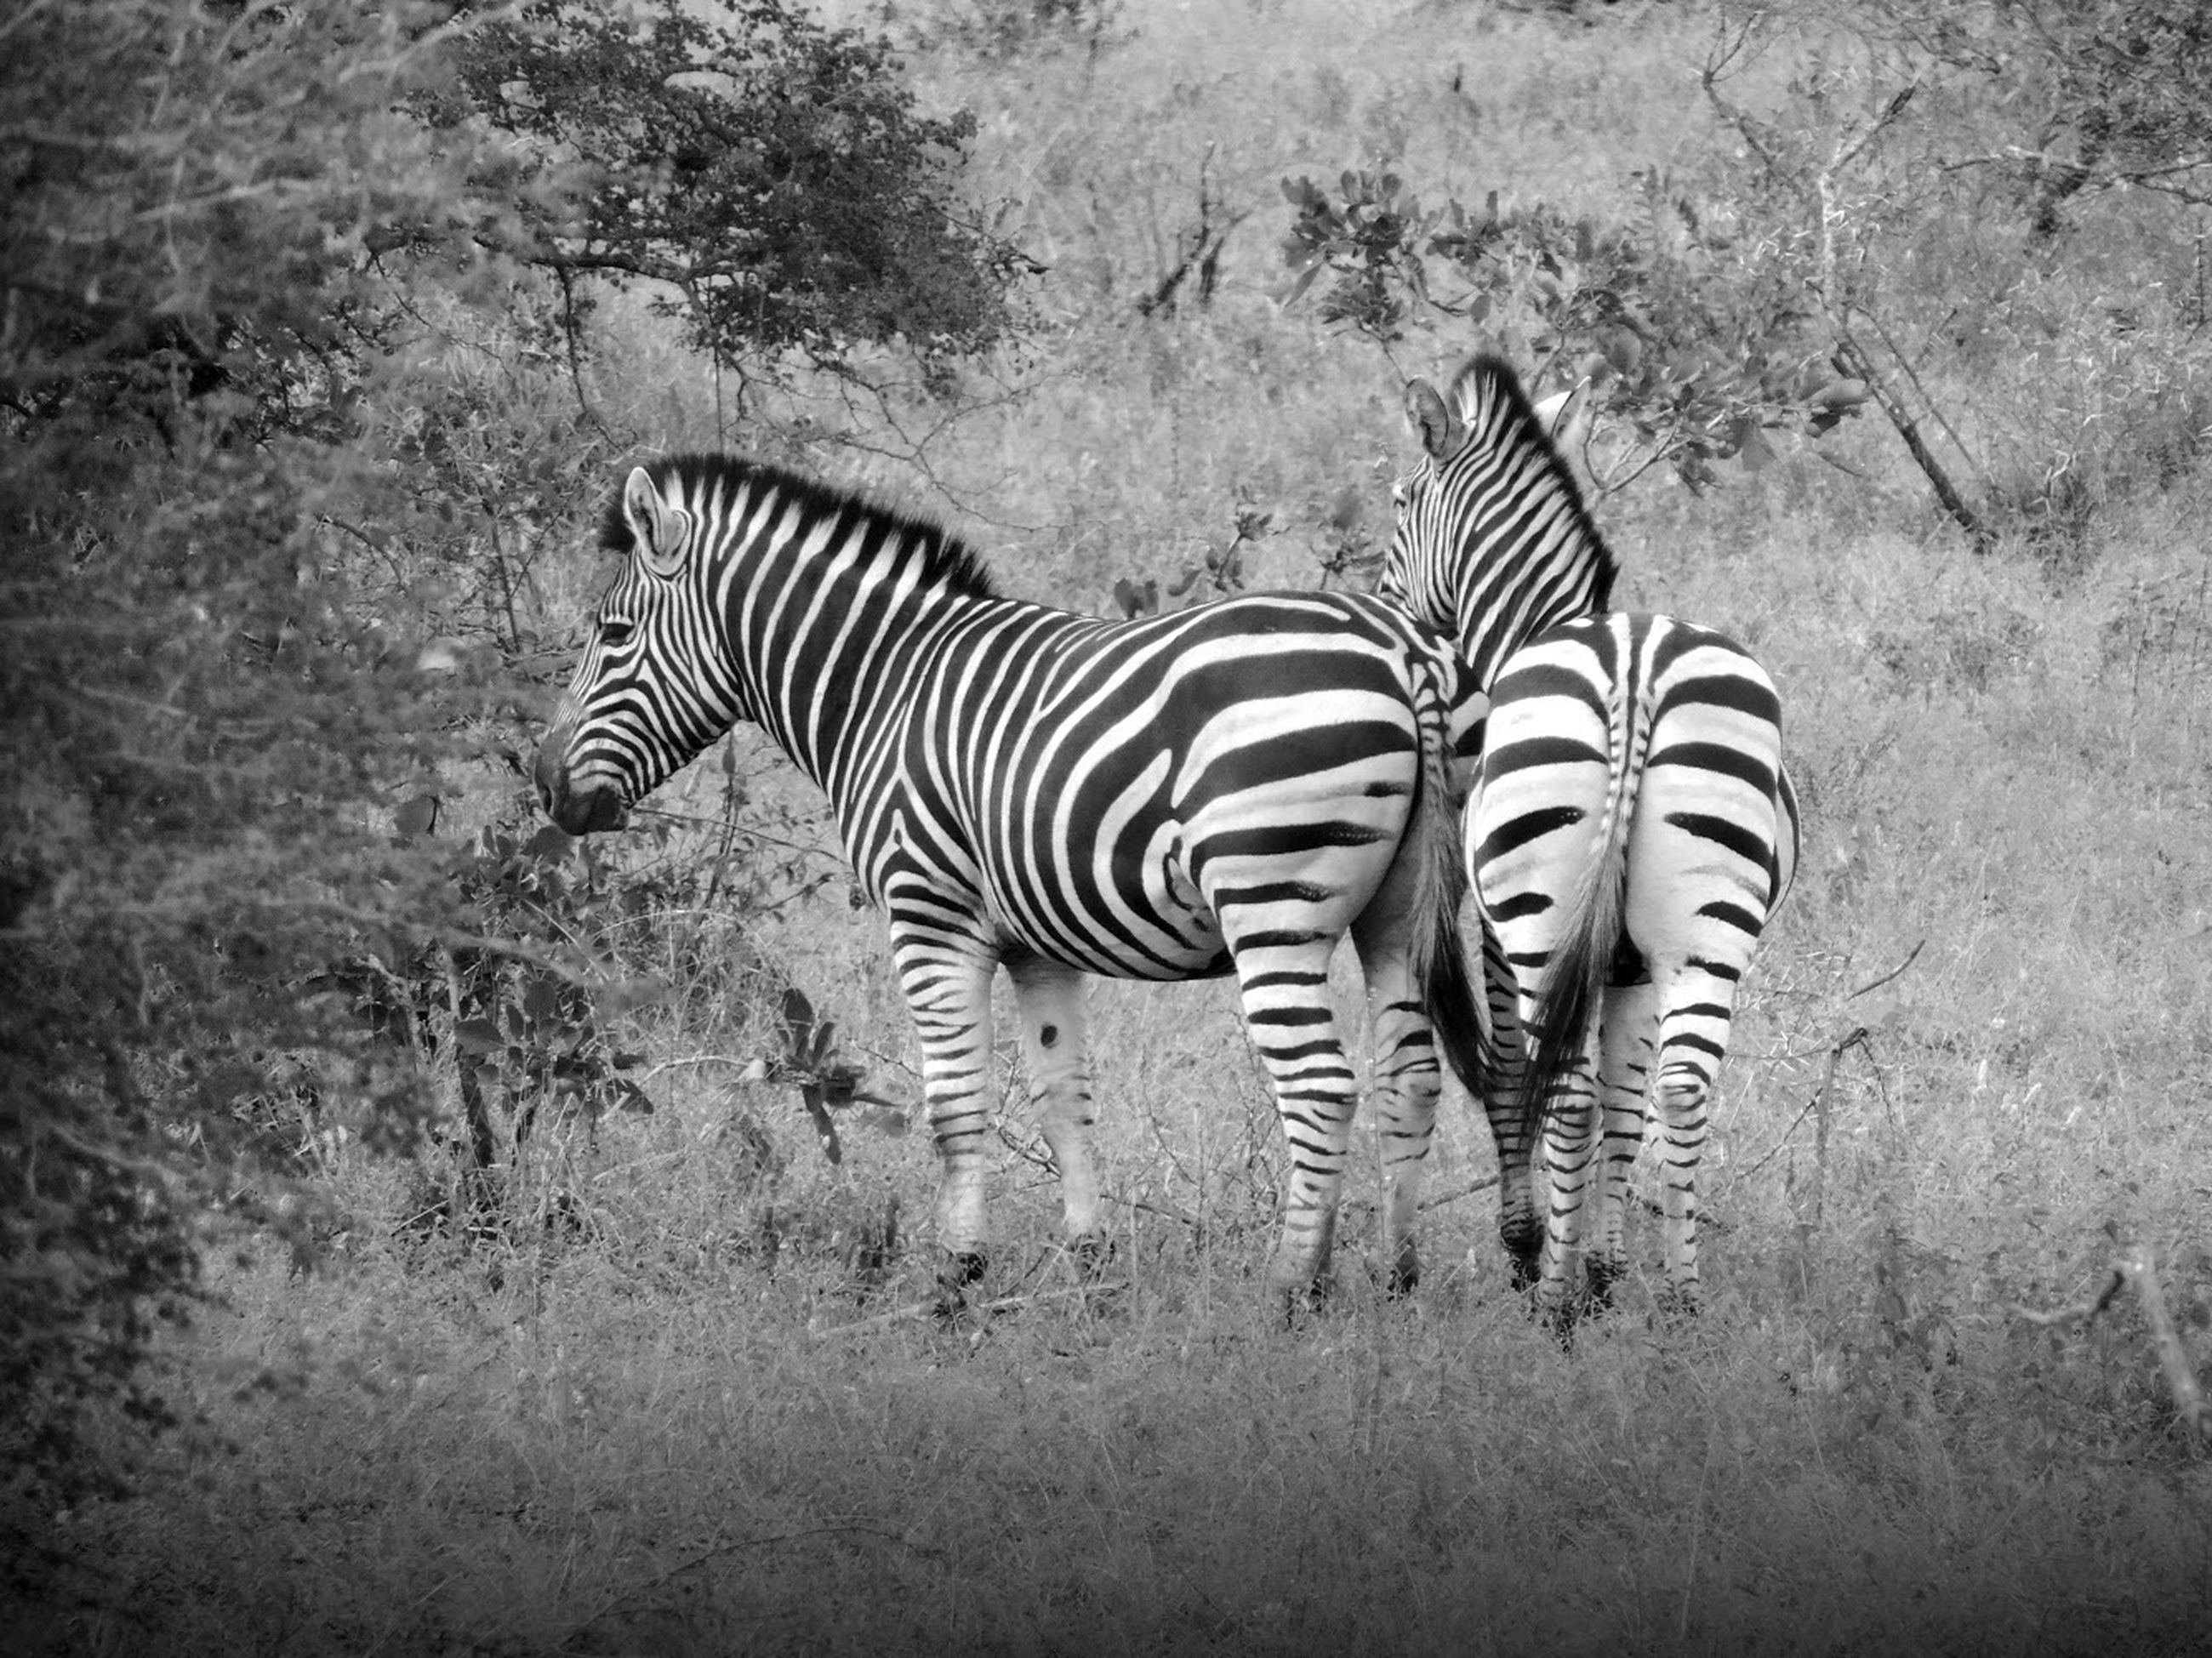 animal wildlife, animal, animal themes, zebra, mammal, animals in the wild, striped, group of animals, vertebrate, plant, field, land, no people, nature, standing, two animals, safari, grass, domestic animals, herbivorous, outdoors, animal family